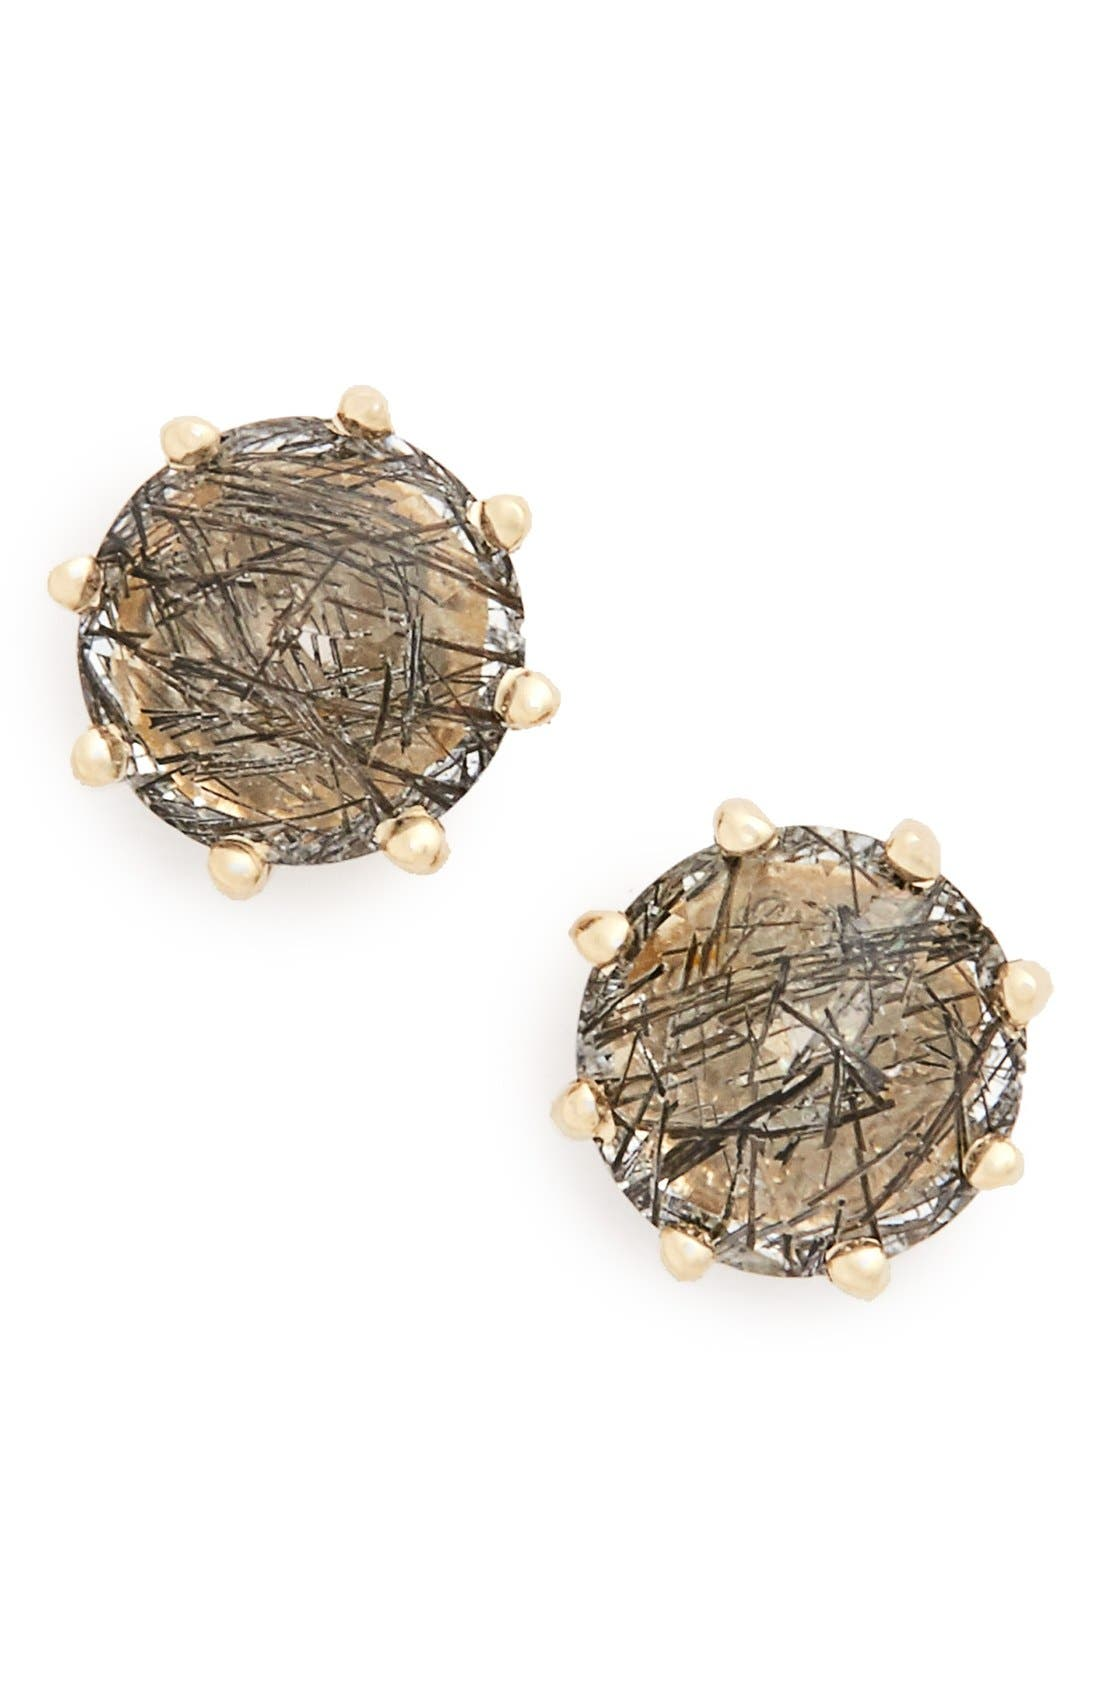 'Eleanor' Black Rutilated Quartz Stud Earrings,                         Main,                         color, Yellow/ Gold/ Black